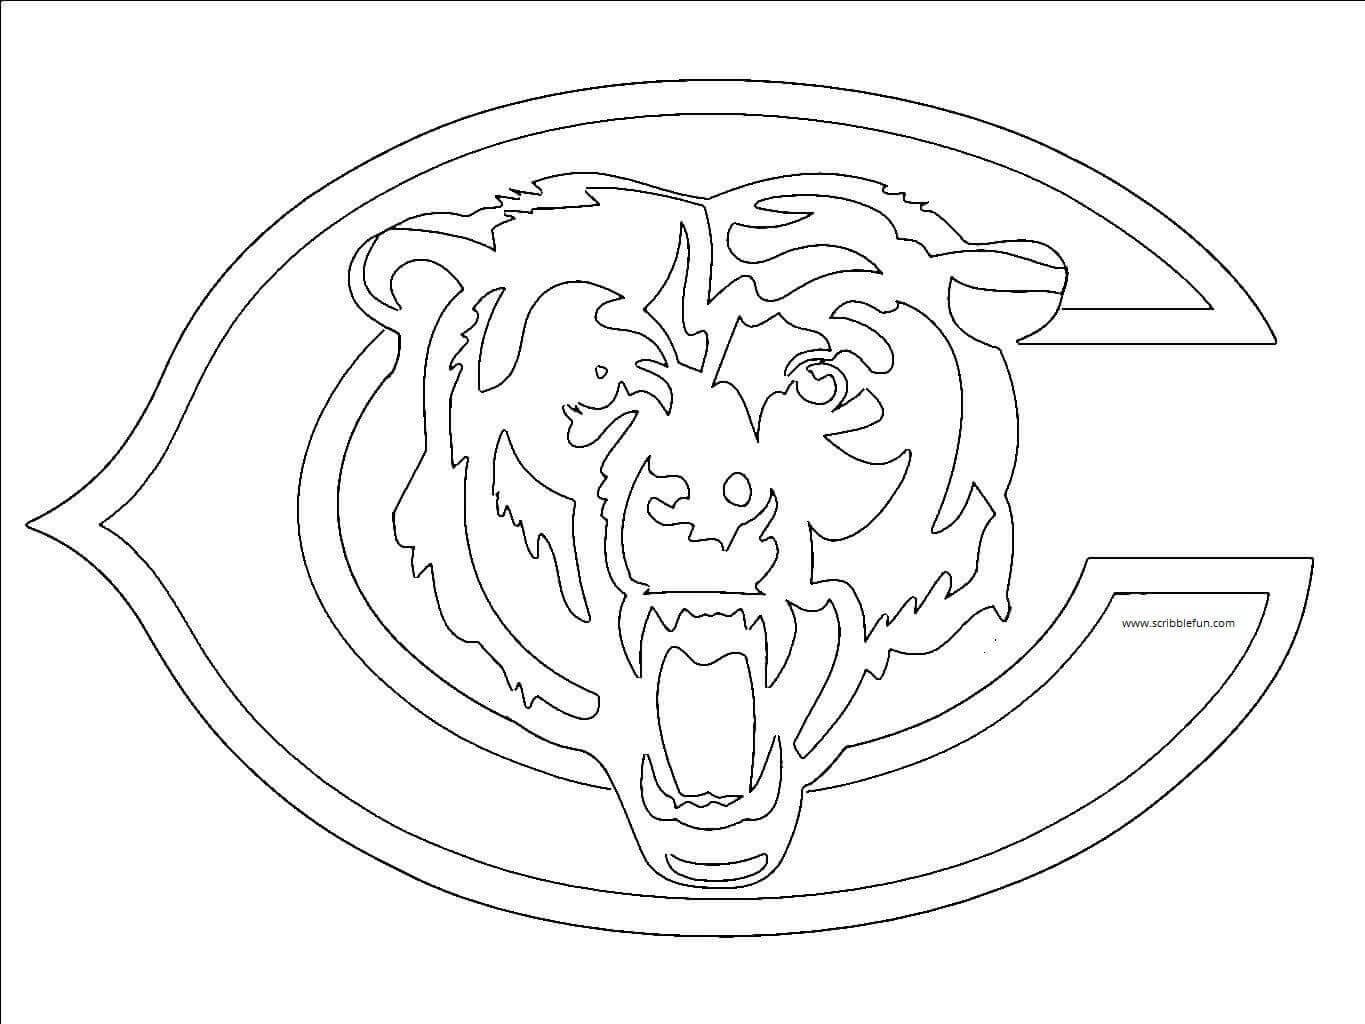 chicago bears coloring pages chicago bears coloring pages coloring bears chicago pages